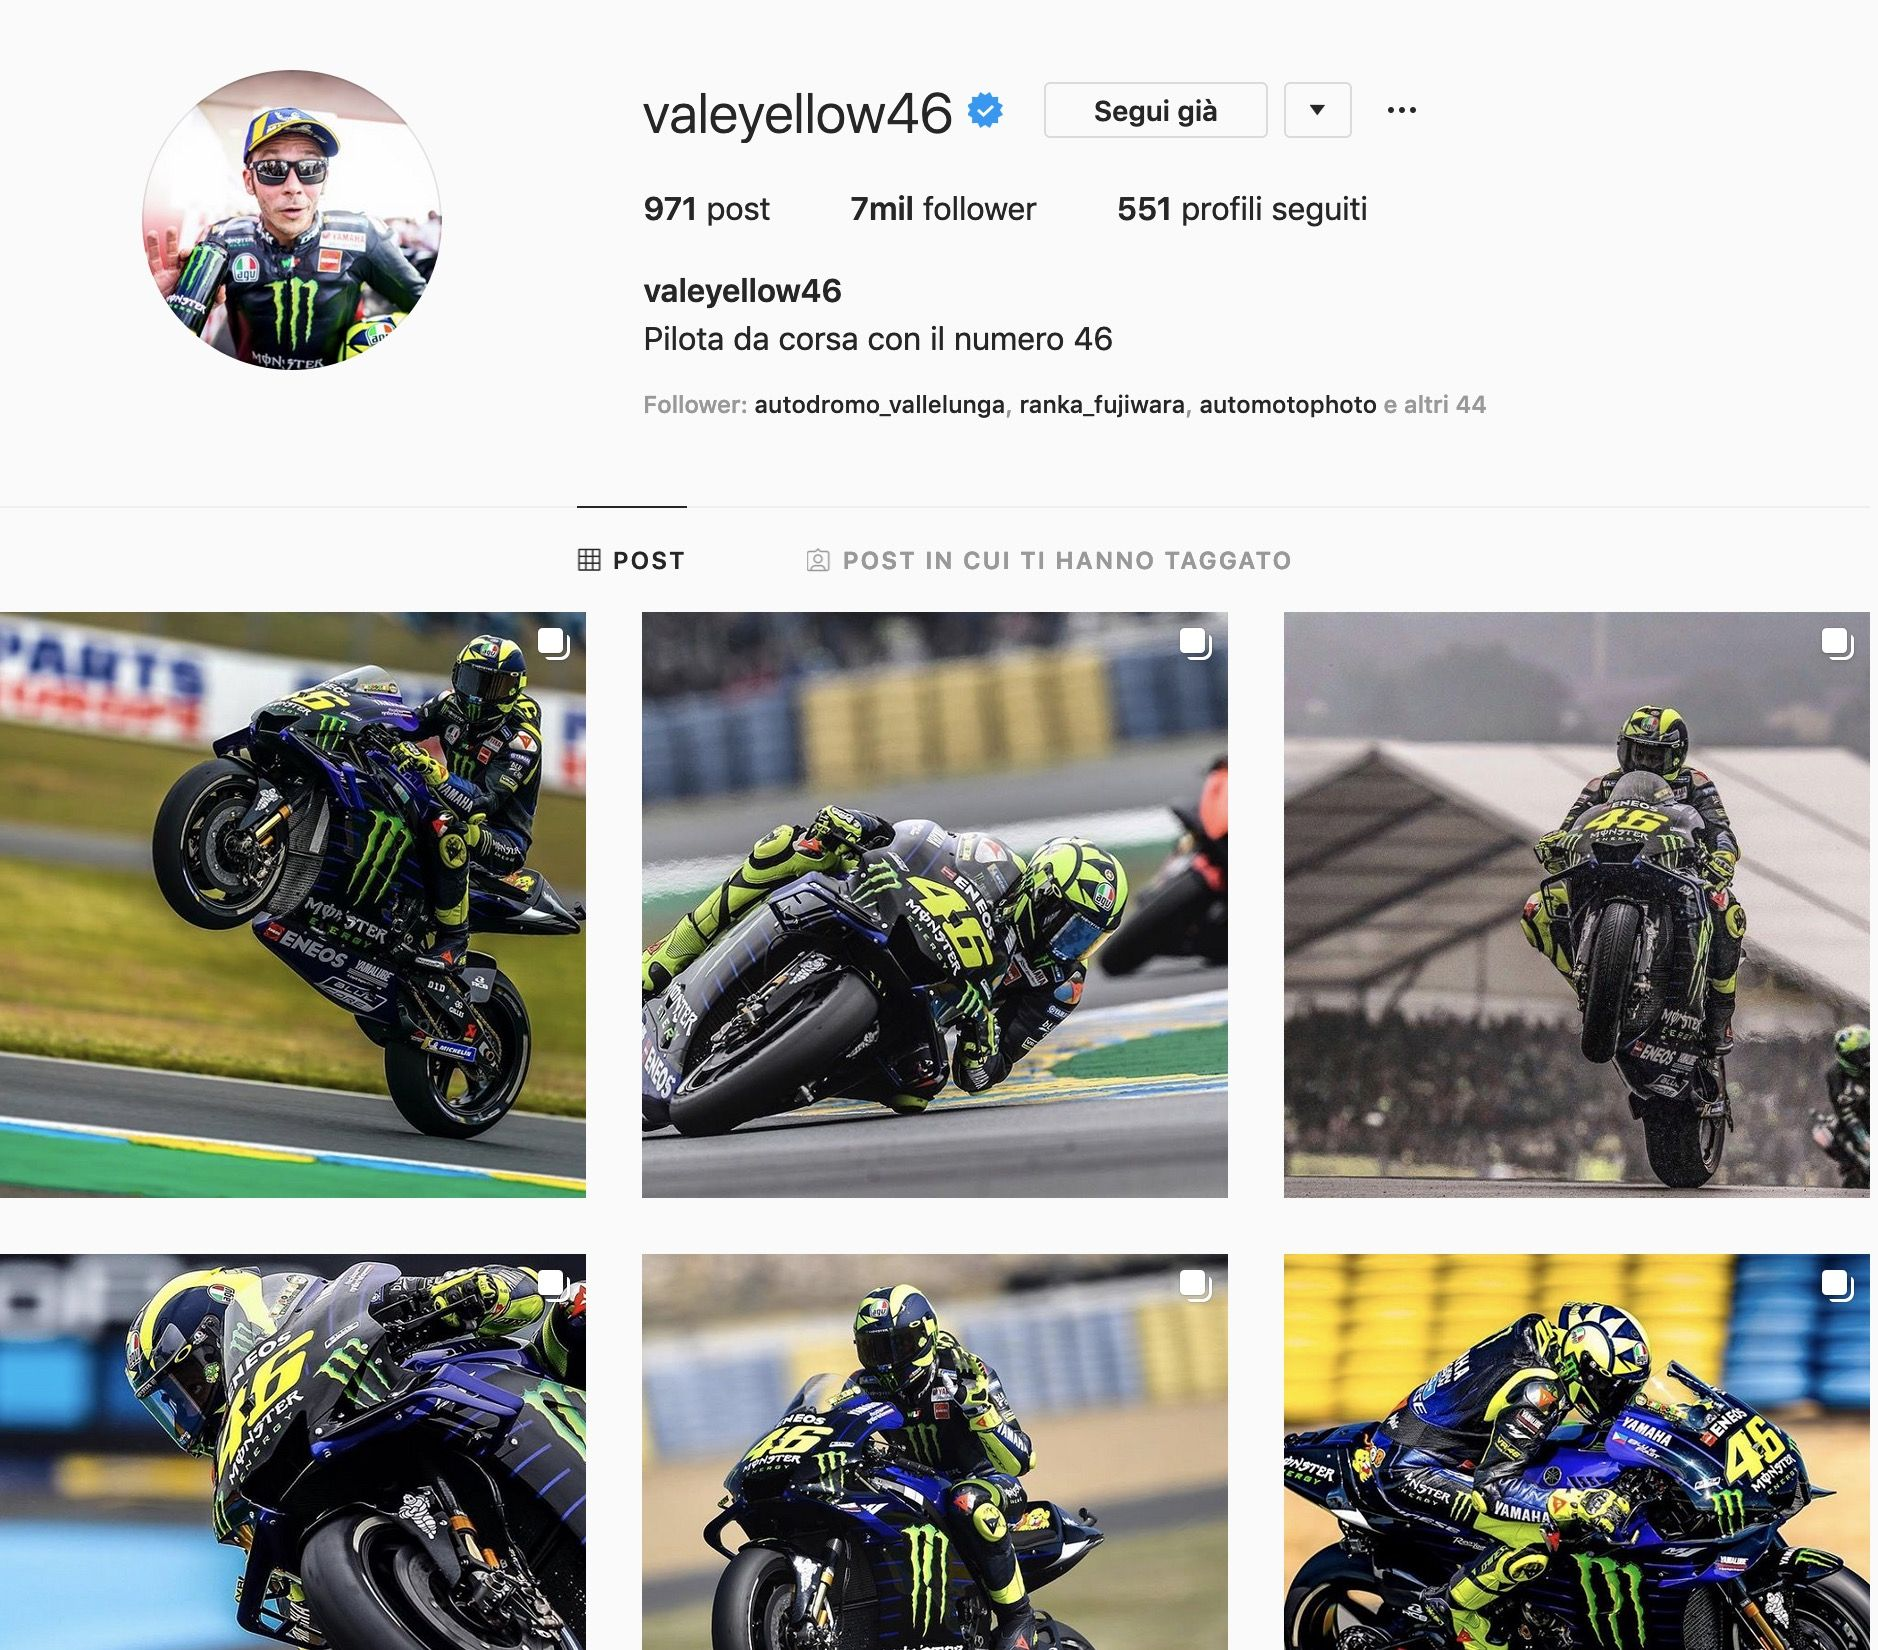 Rossi in the slipstream of Fedez on Instagram, Chiara Ferragni still far ahead